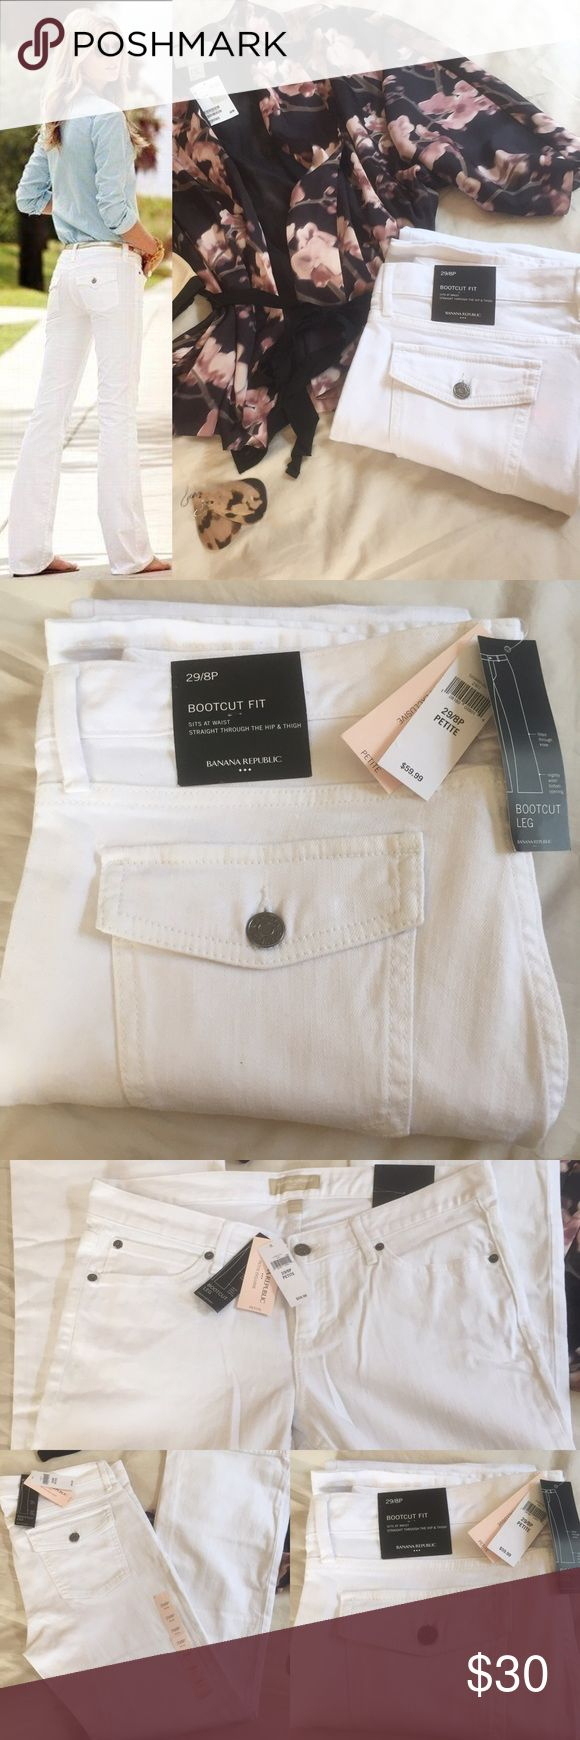 NWT BANANA REPUBLIC White Bootcut Jeans NWT never worn white Bootcut fit jean. Size 29/8p. Check out my other listing, also available on Mercari 👠👗👜💍🕶👟 **stock photo is for reference only Banana Republic Jeans Boot Cut